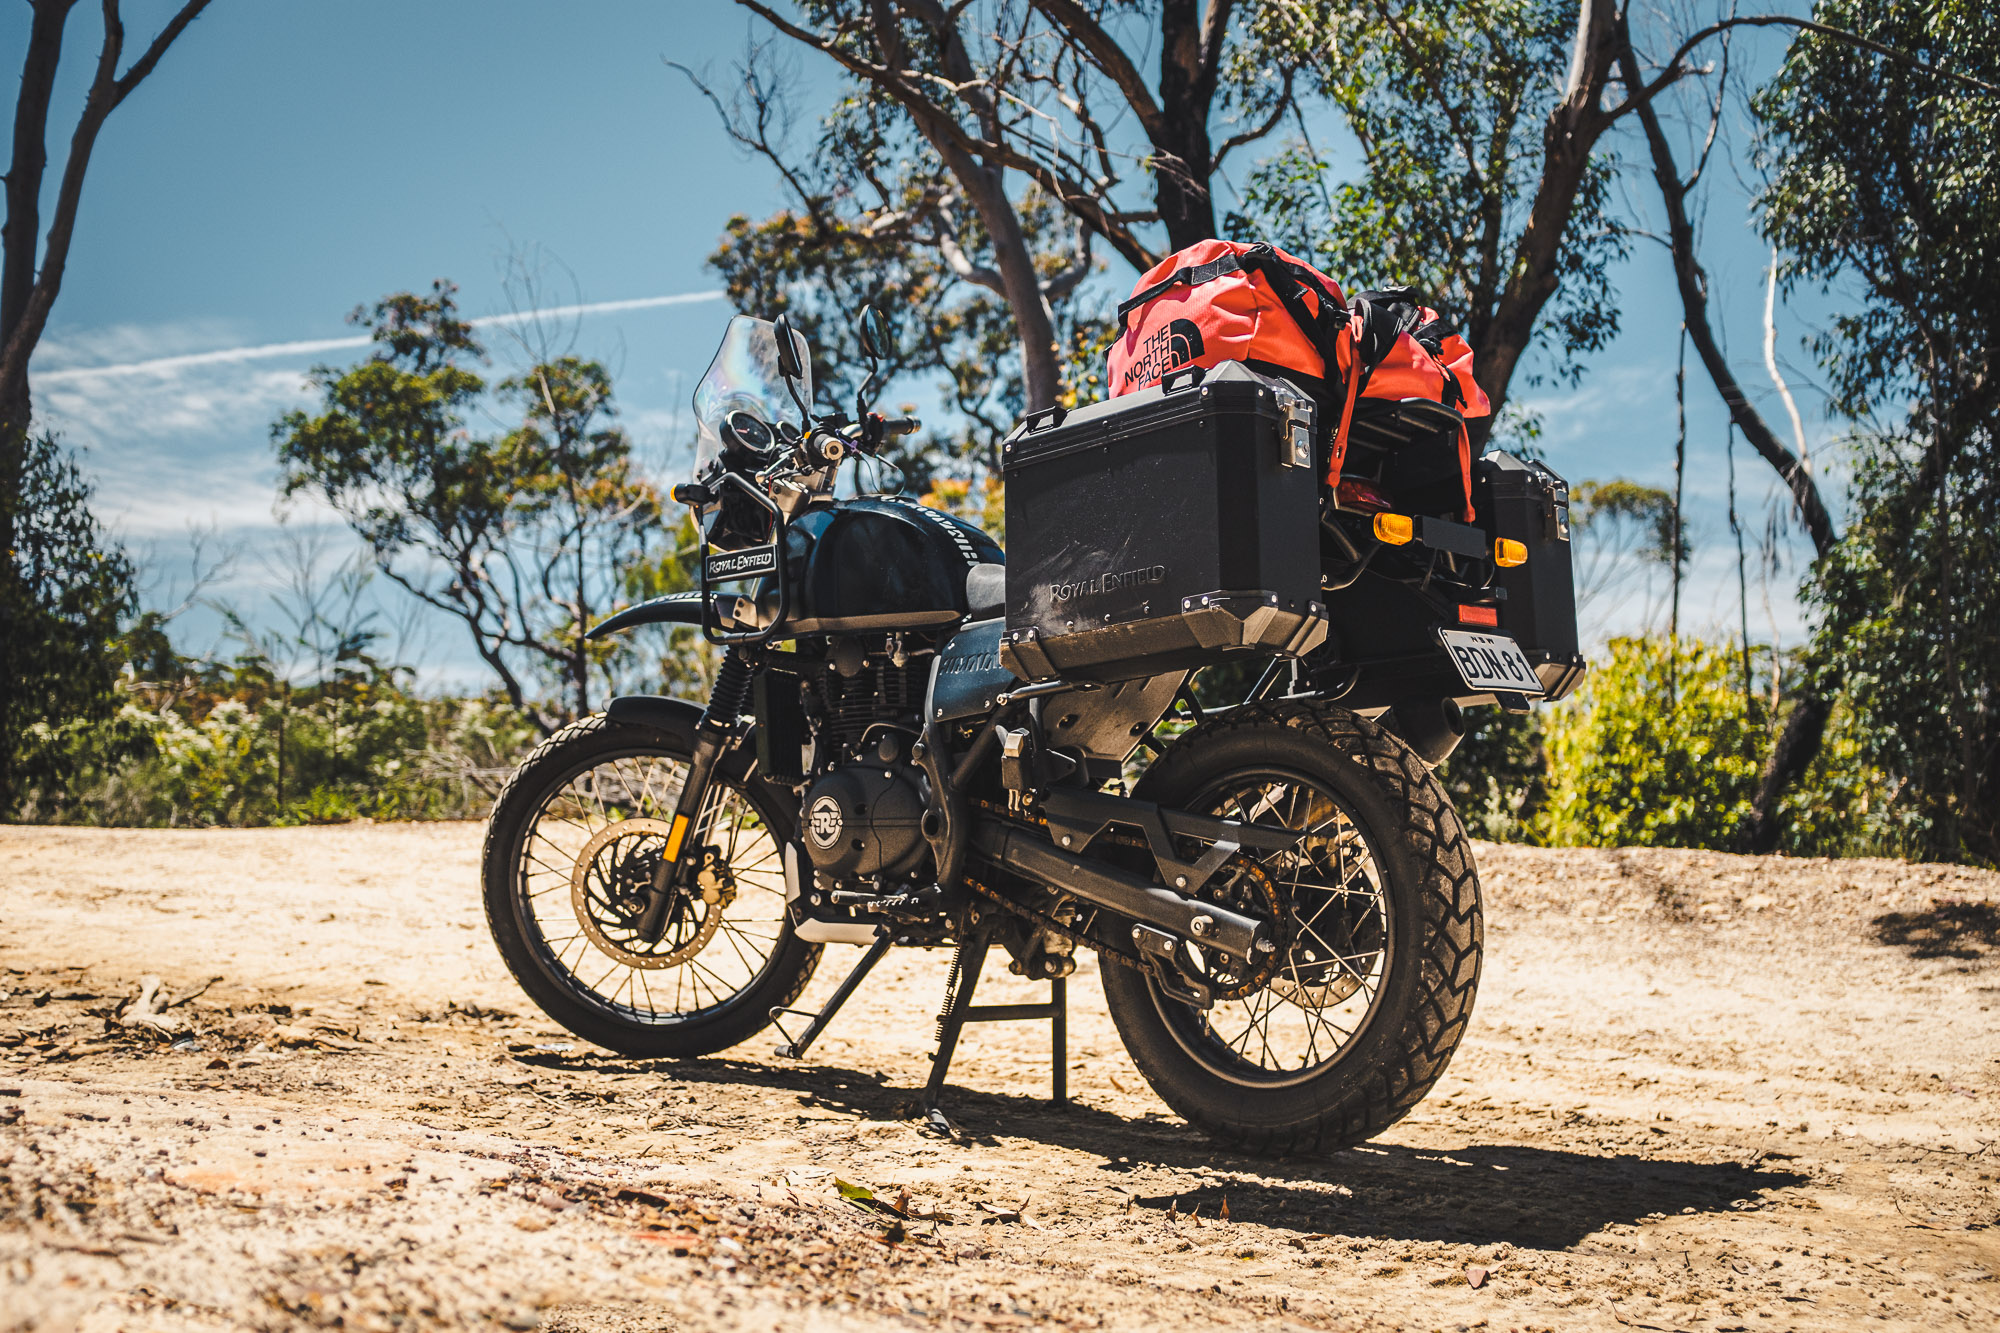 A Royal Enfield Himalayan in the Sydney bush